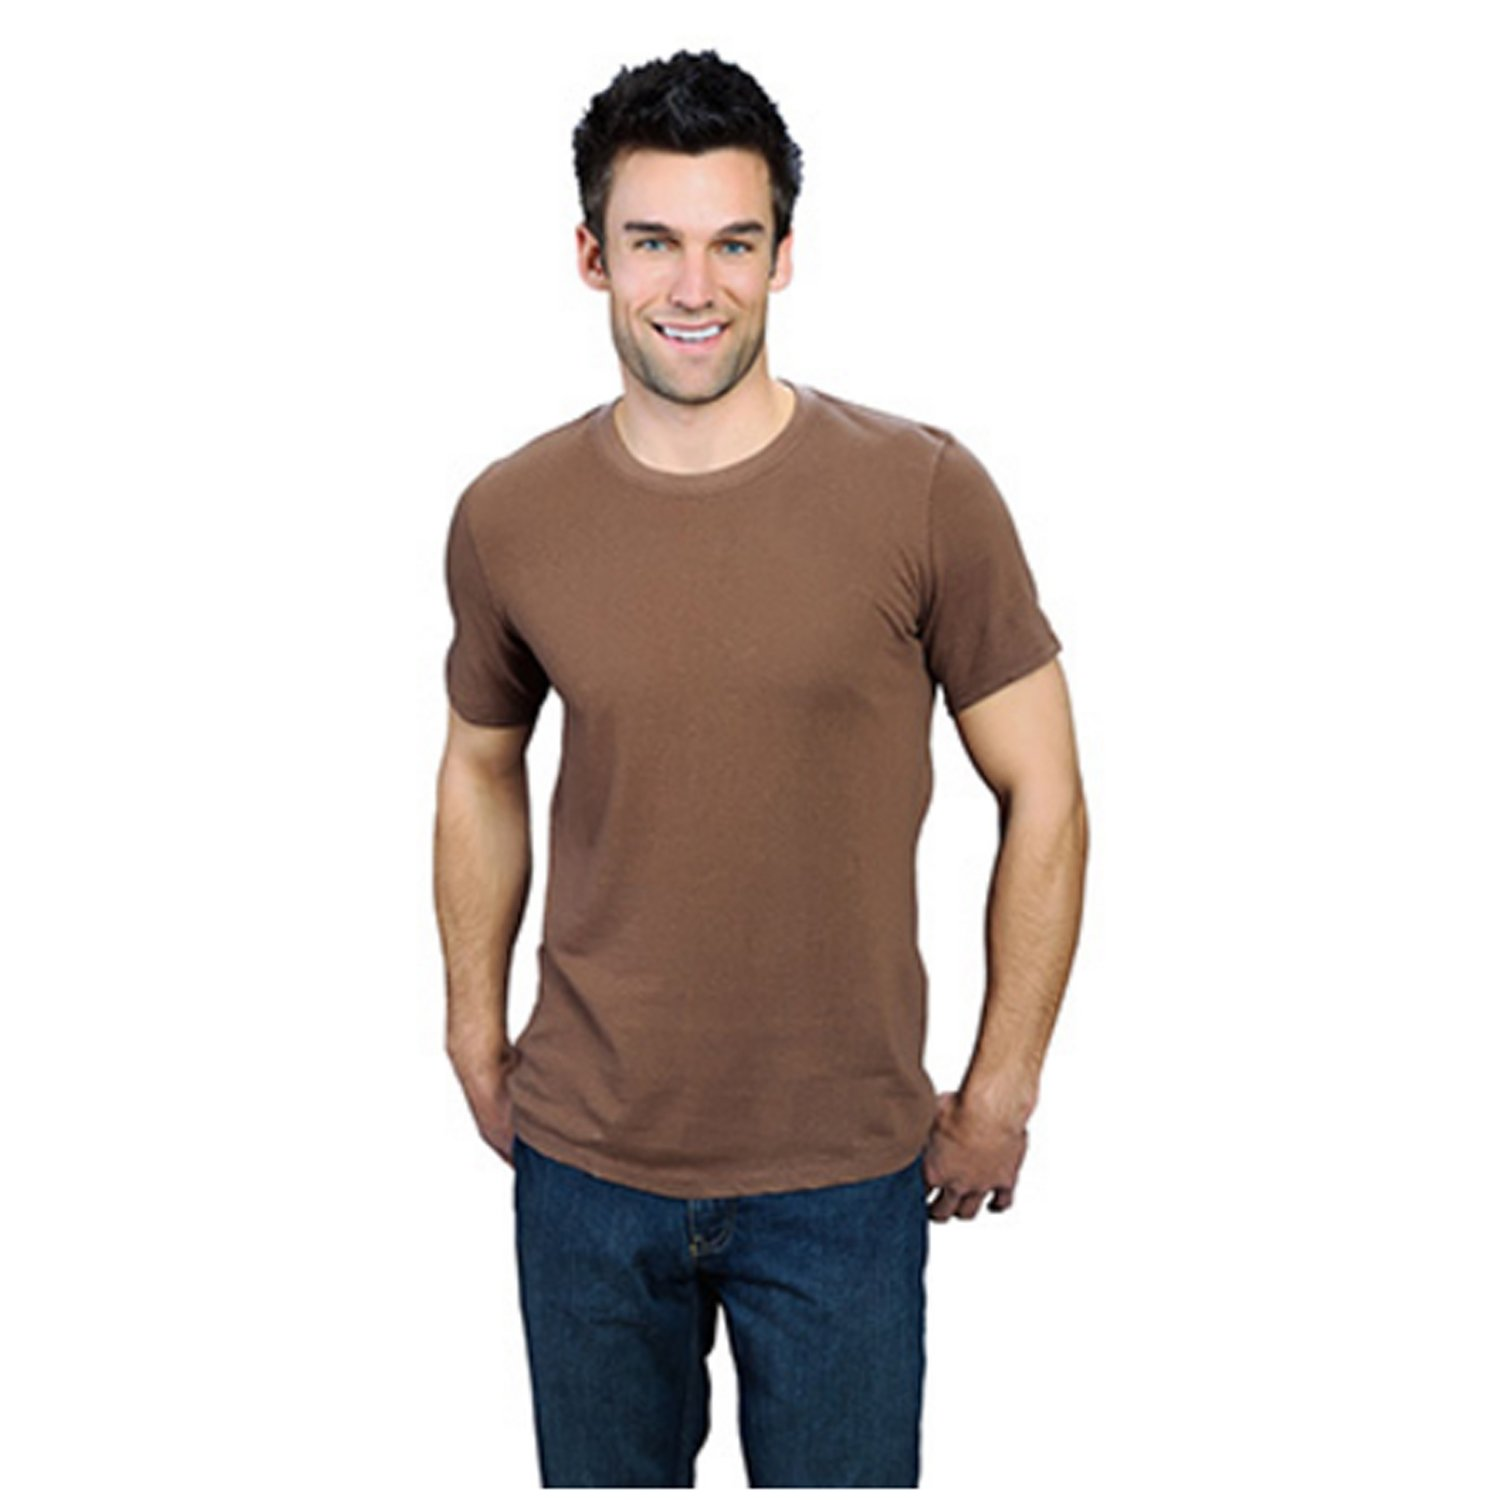 ONNO Men's Organic Bamboo T-shirts. Short Sleeves. Round neck.